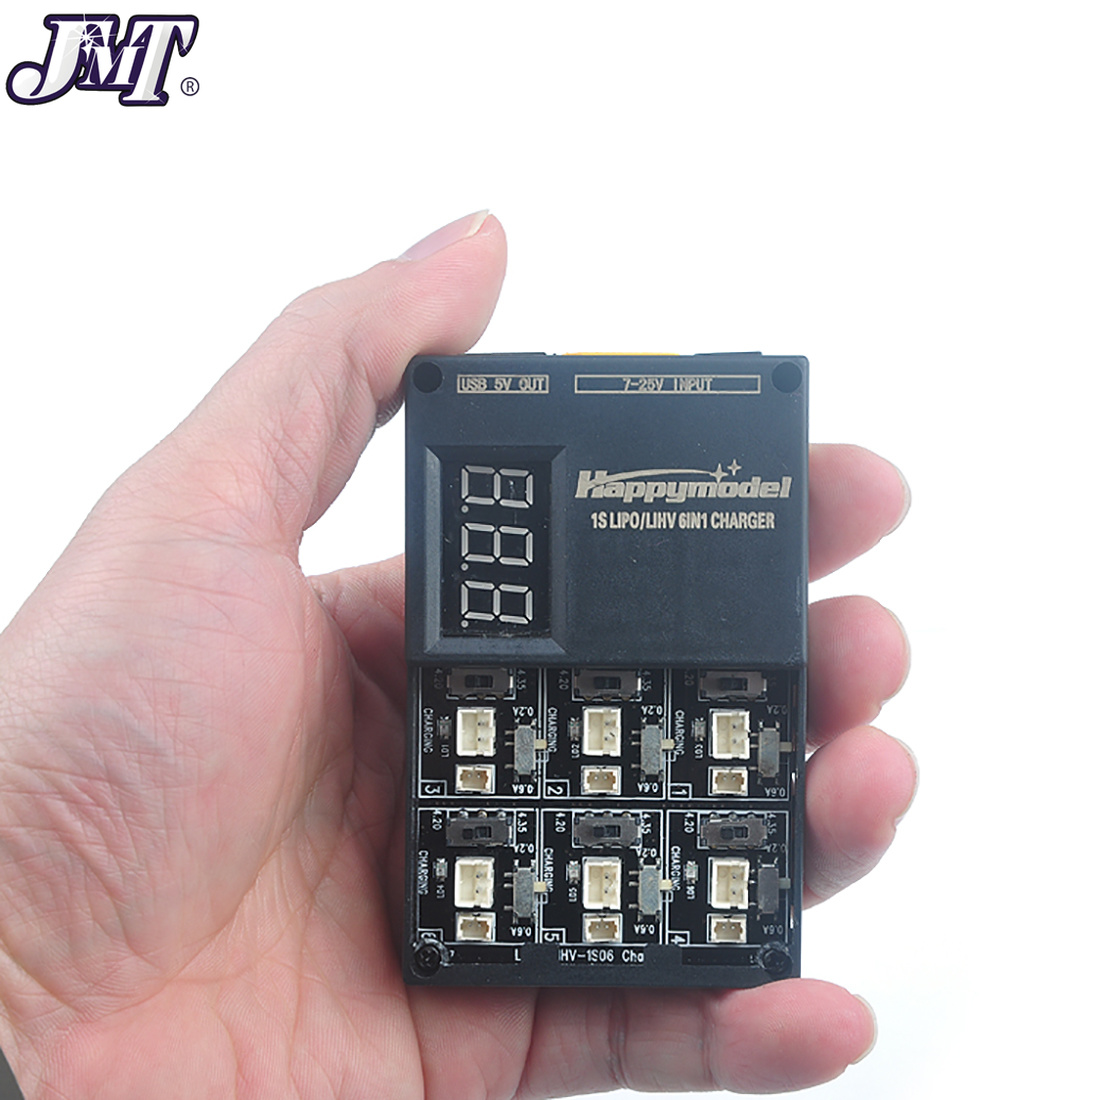 6 in 1 3.7V 3.8V 1S Lipo LiHv Battery Charger Board for Tiny 6 7 QX65 Mobula7 Mobula6 Mini RC Quadcopter FPV Racing Drone Bwhoop image